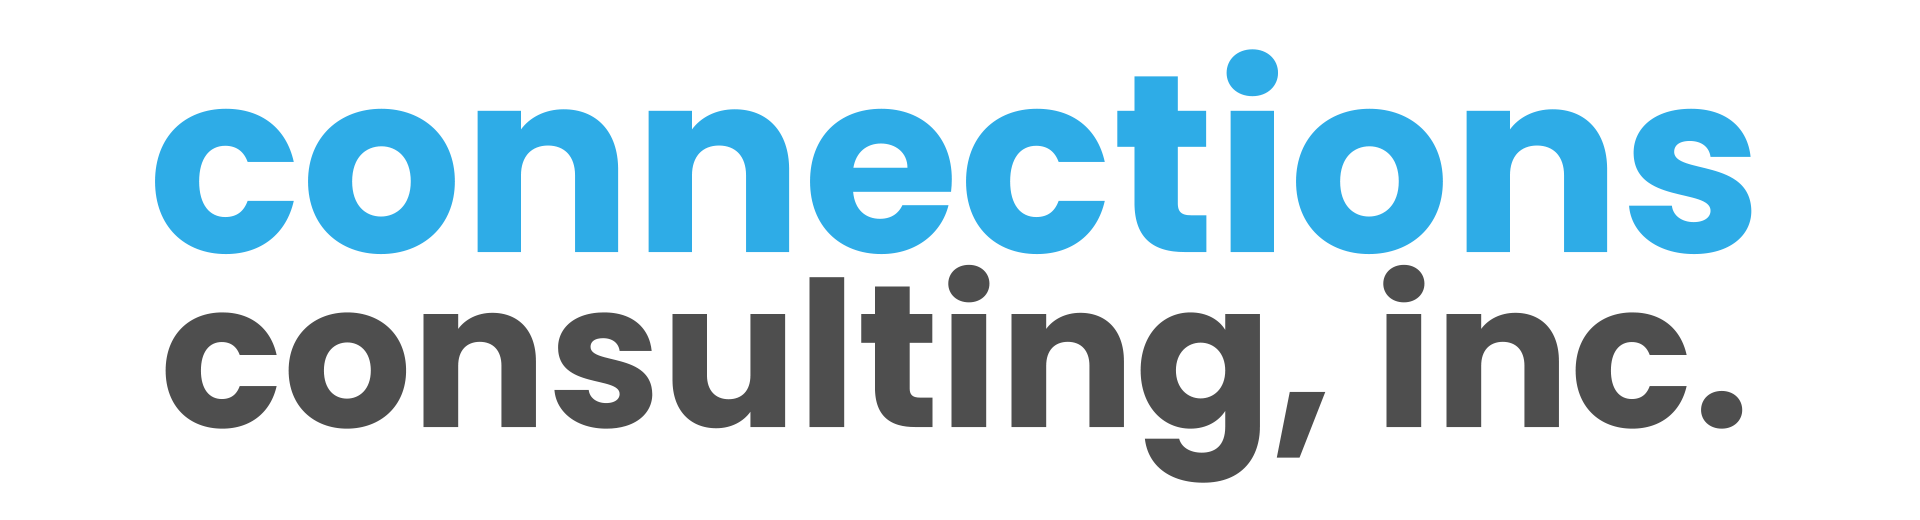 Connections Consulting, Inc.